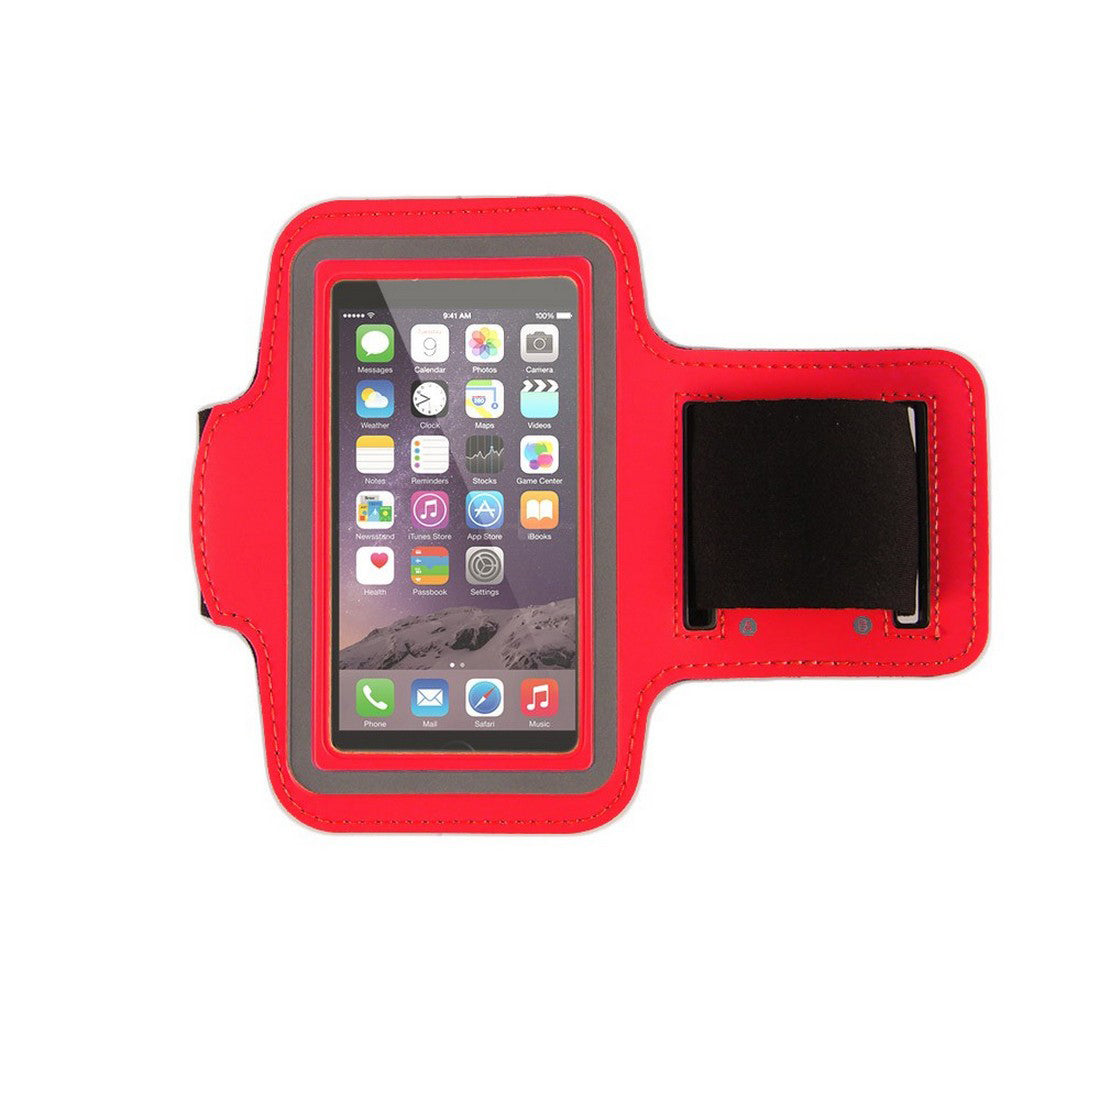 "Neoprene Armband Size 02 For iPhone 6S/ 6 4.7"" & Samsung Galaxy S3 S4 S5 & LG G2 & Nokia N920 & BlackBerry Z10 & HTC M7 Red"